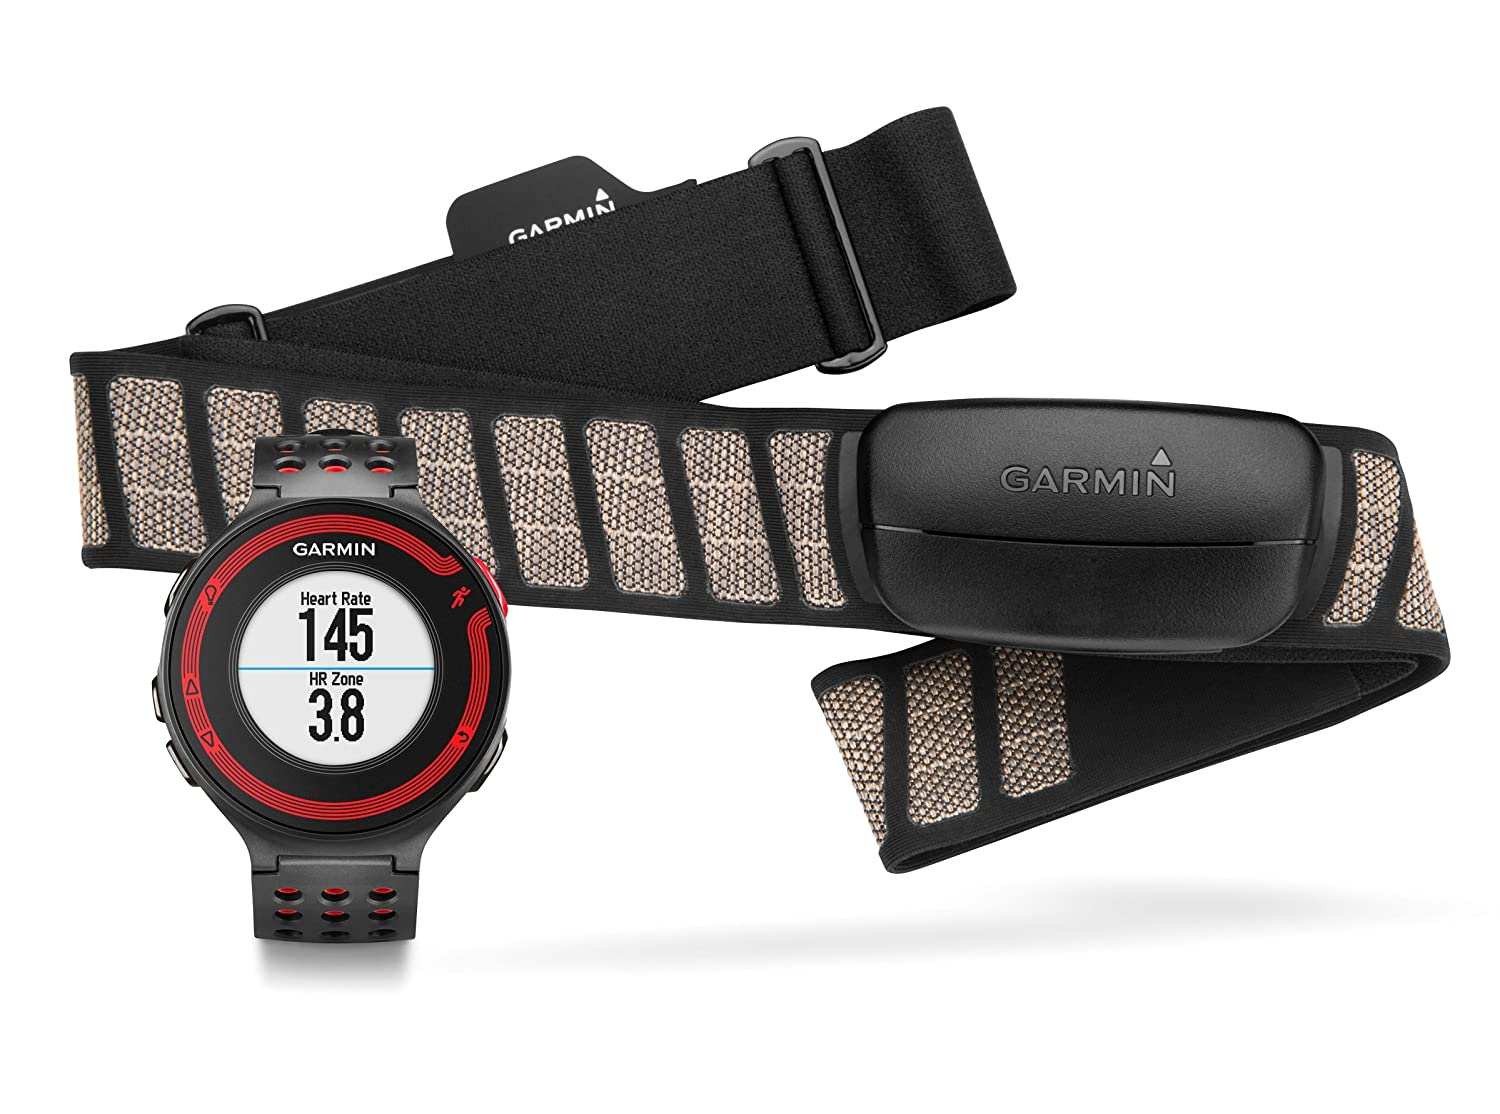 Garmin Forerunner 220 Gps Running Watch With Colour Display And